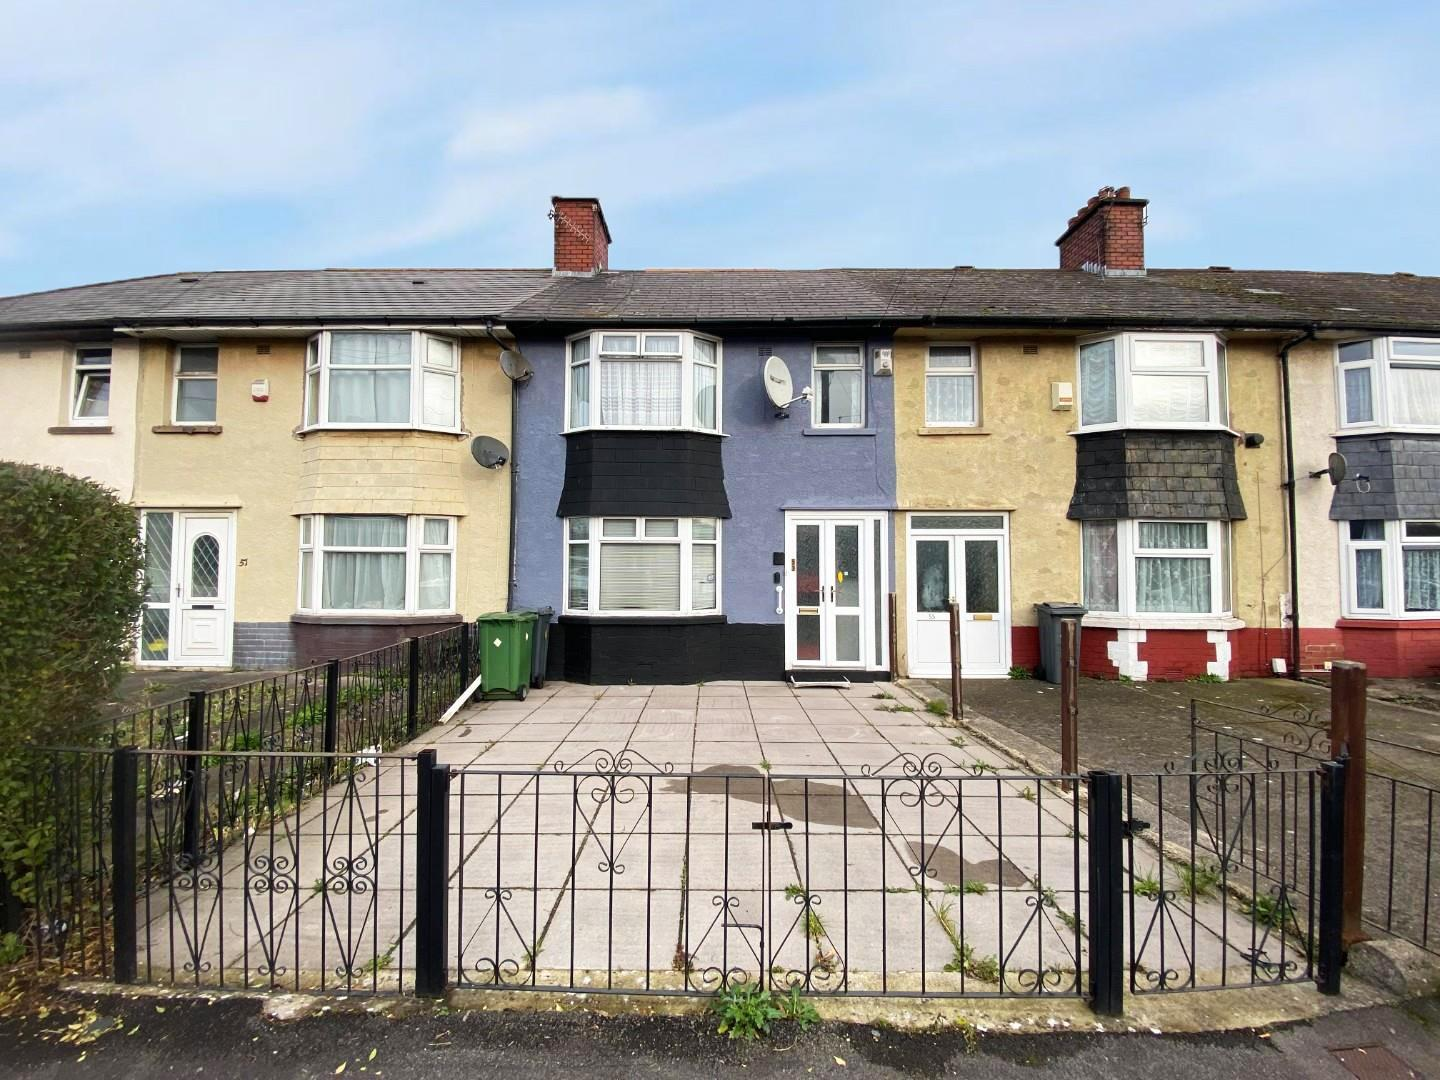 3 bed terraced house for sale in Whitaker Road, Cardiff, CF24